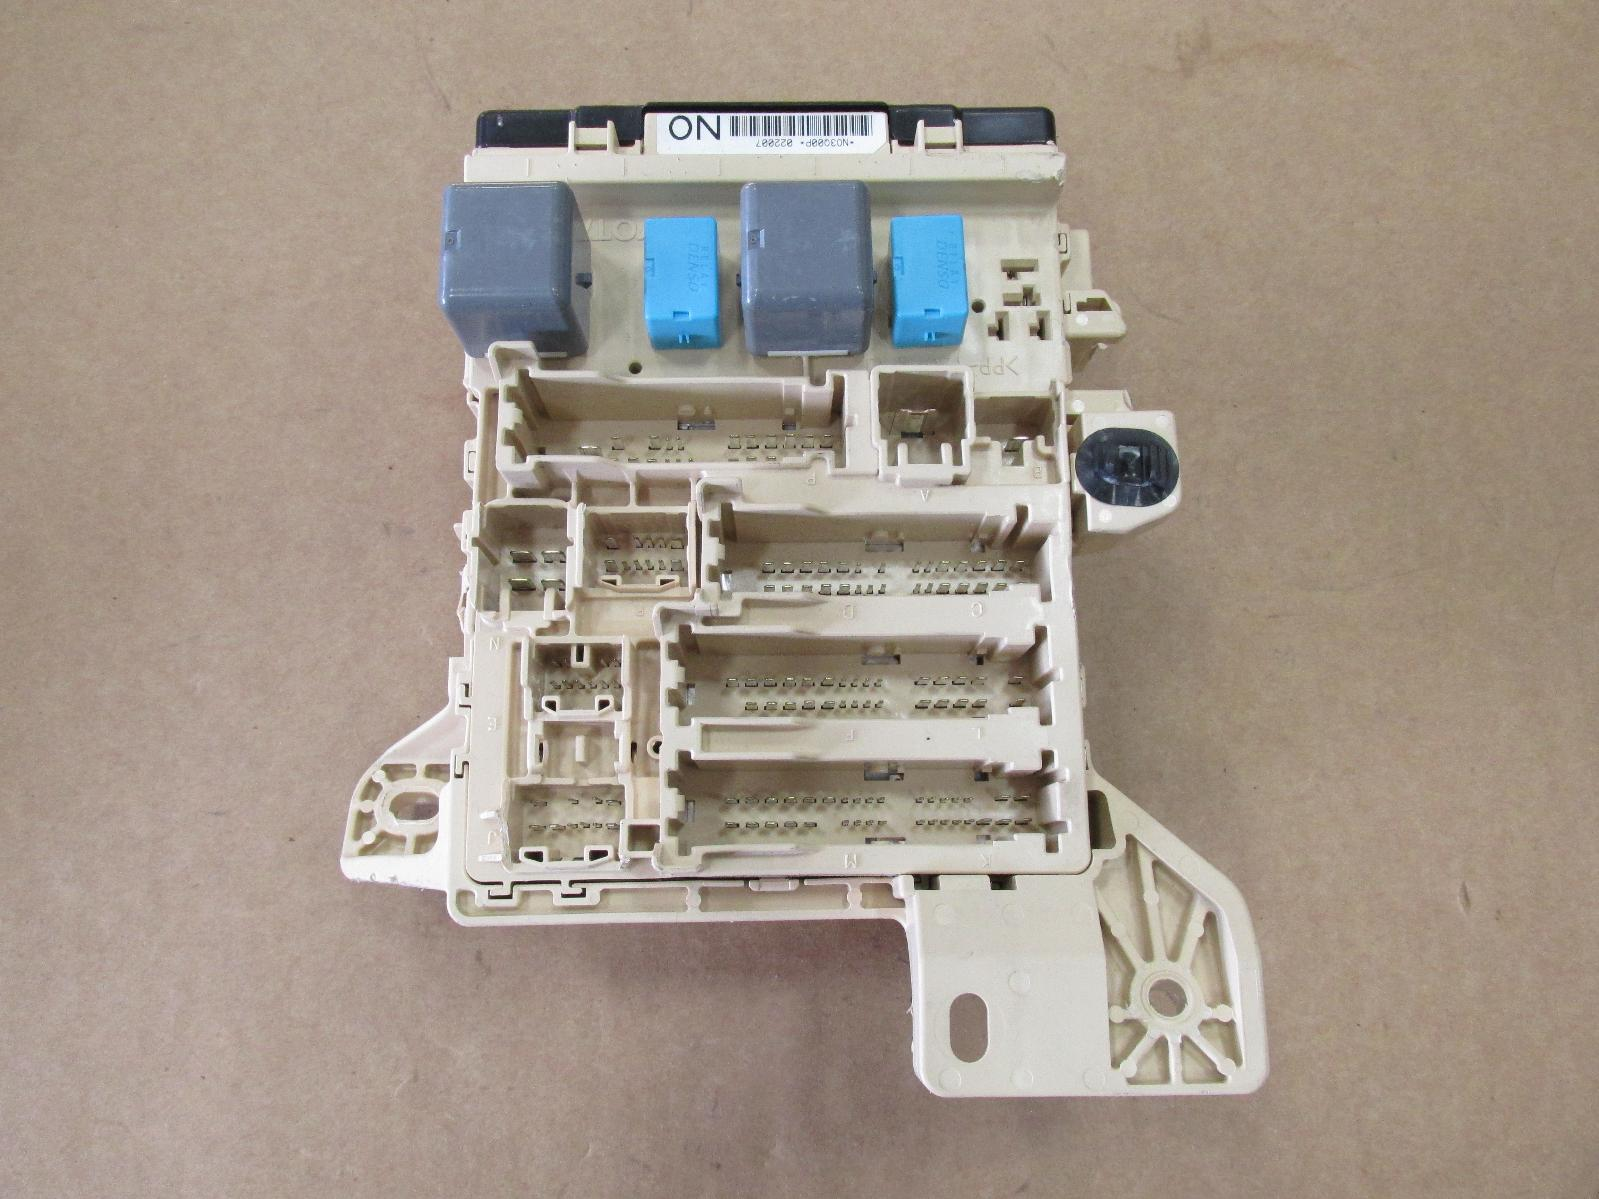 1997 Toyota Camry Fuse Box Diagram Wiring Library